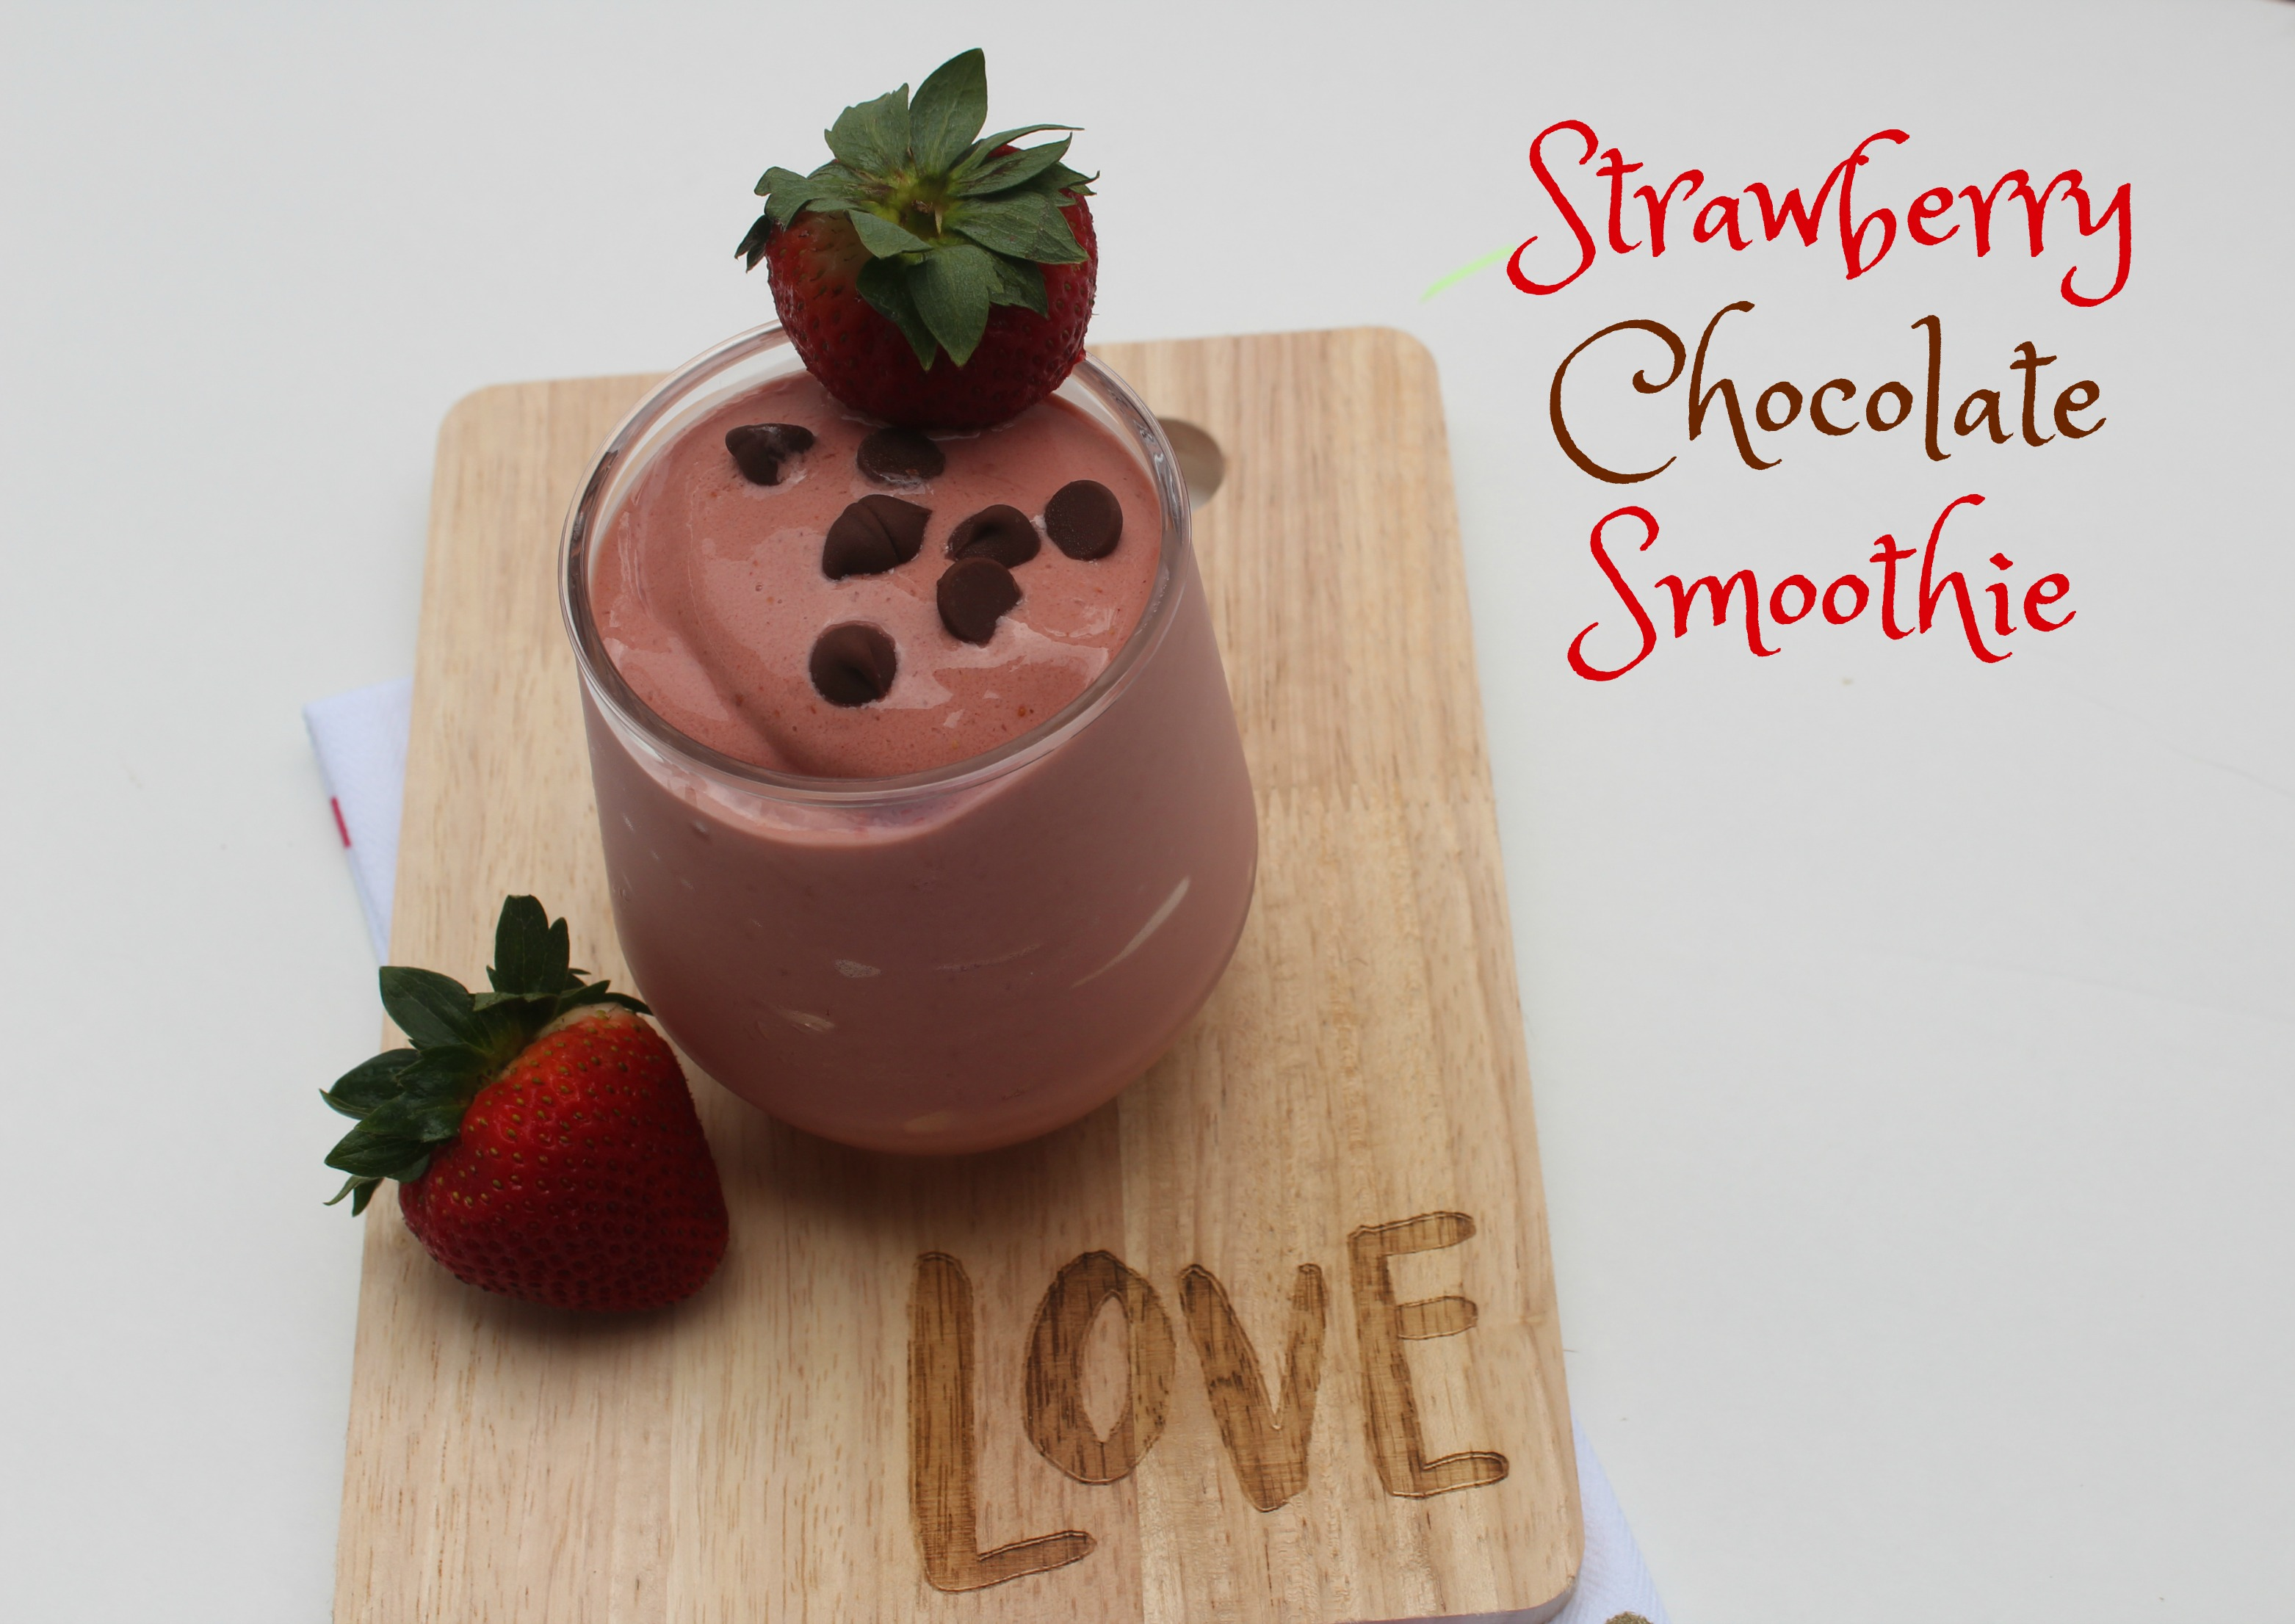 Strawberry Smoothie Recipes-- including this yummy Strawberry Chocolate Smoothie--the perfect summertime treat!